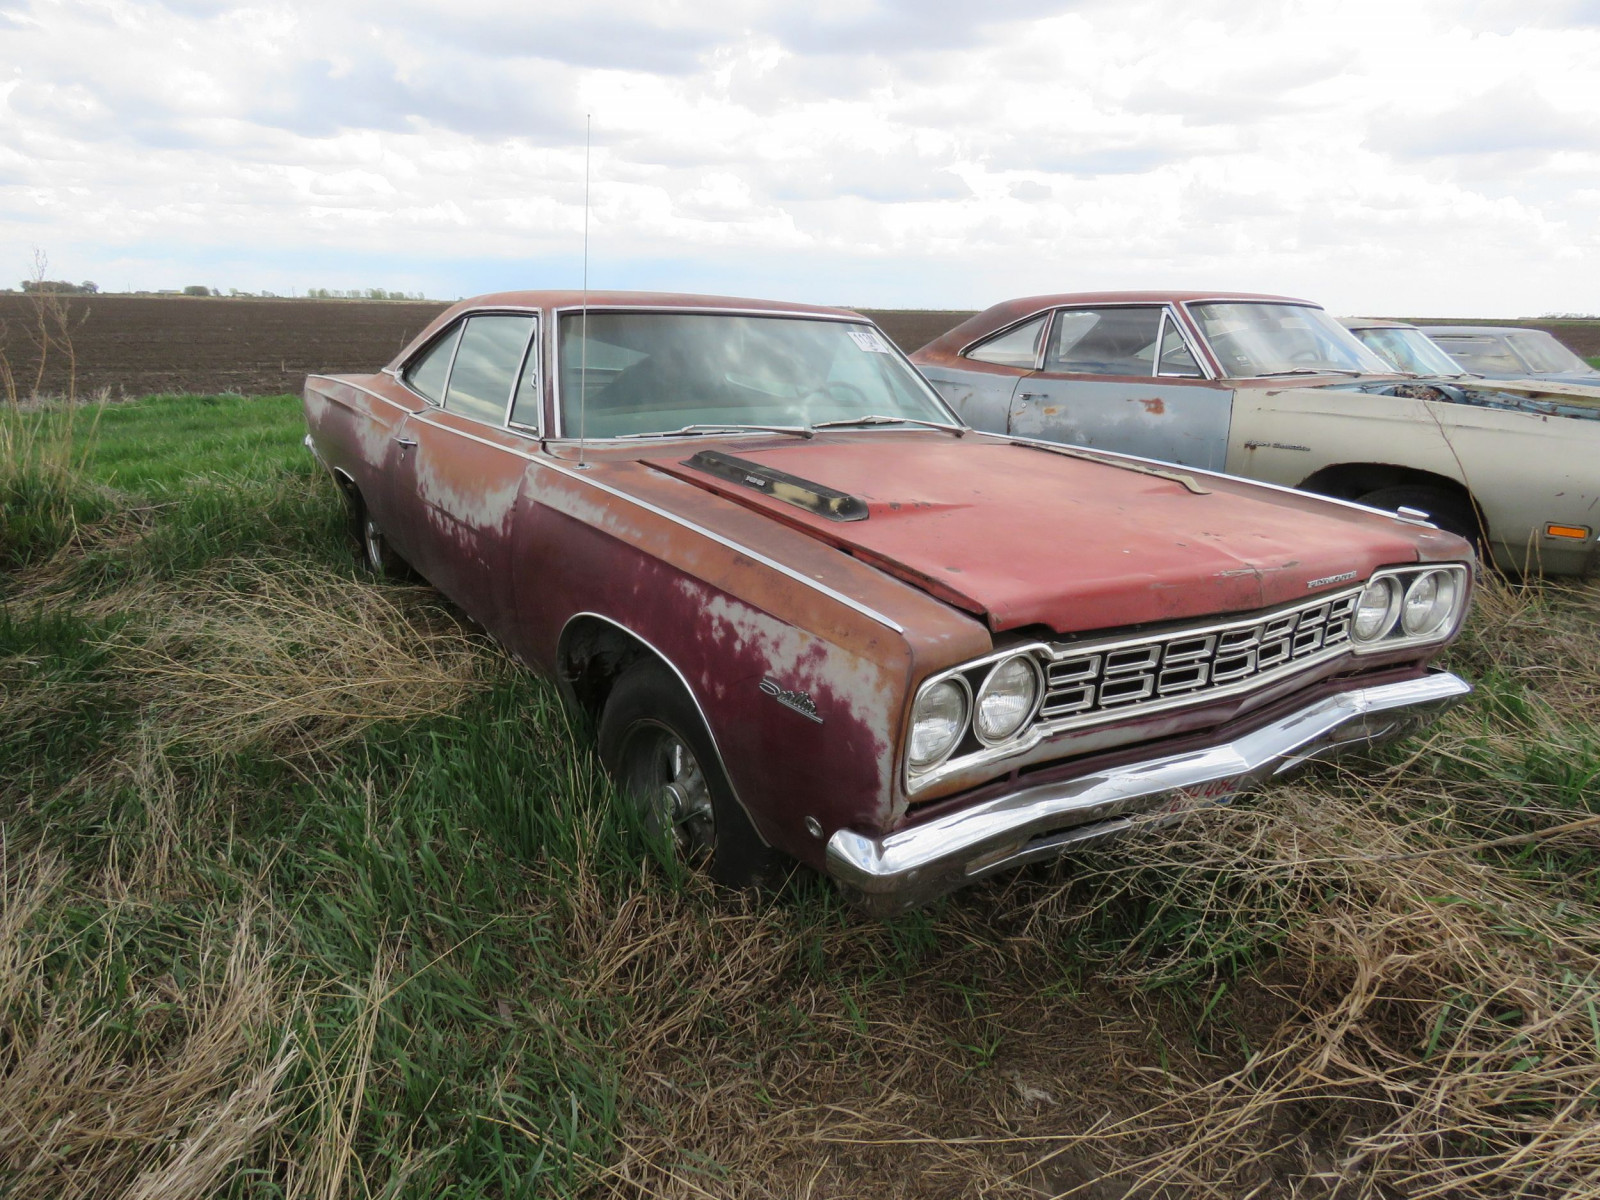 1968 Plymouth Satellite Coupe - Image 3